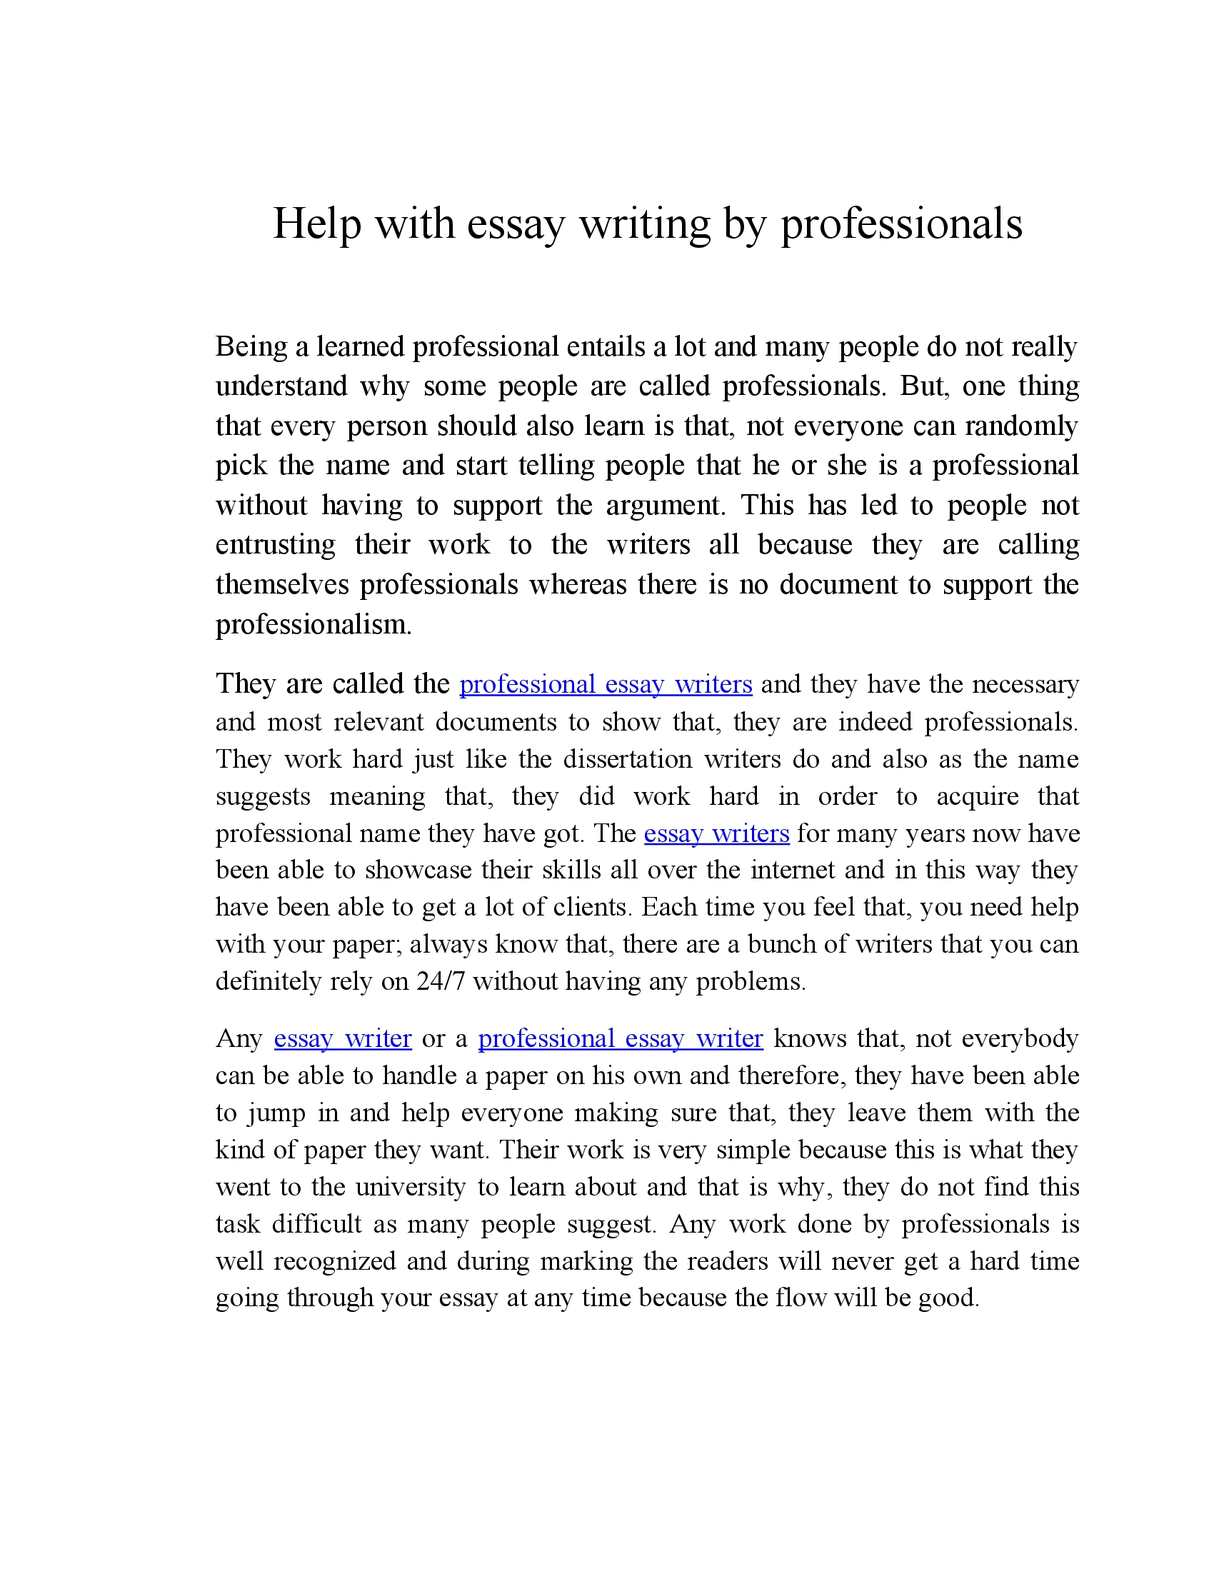 help with essay papers Searching for a person to write your college essay make an order with our essay writing service and receive a plagiarism-free paper sample that fully meets your.